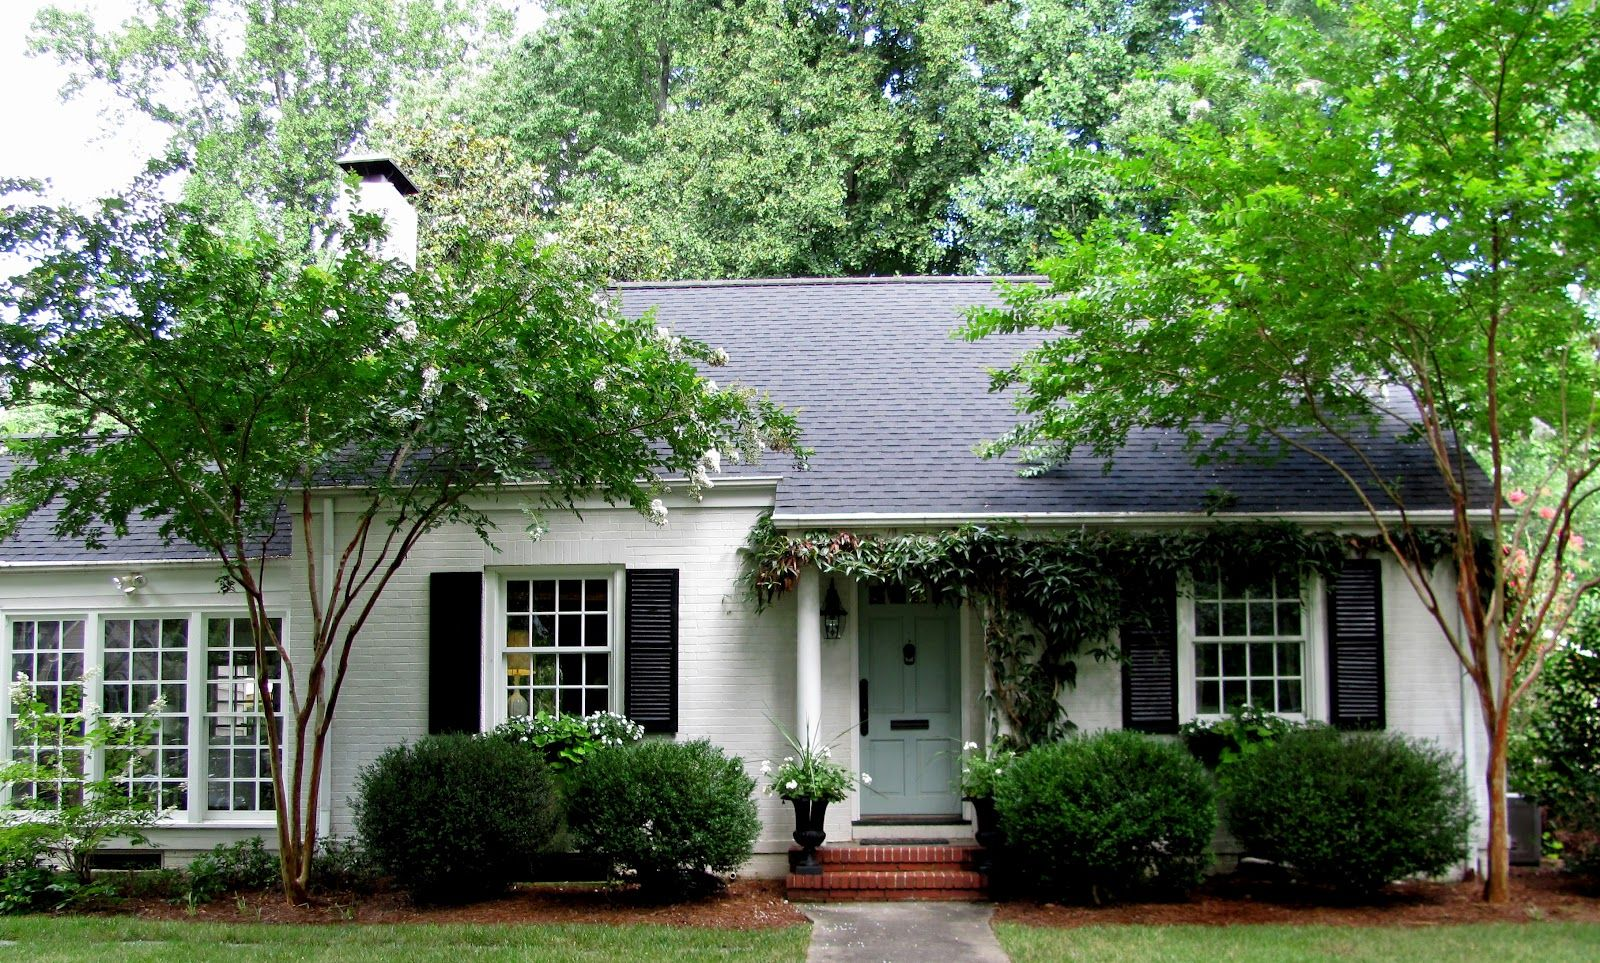 Swell 1000 Images About Exterior House Paint On Pinterest Ranch Homes Largest Home Design Picture Inspirations Pitcheantrous